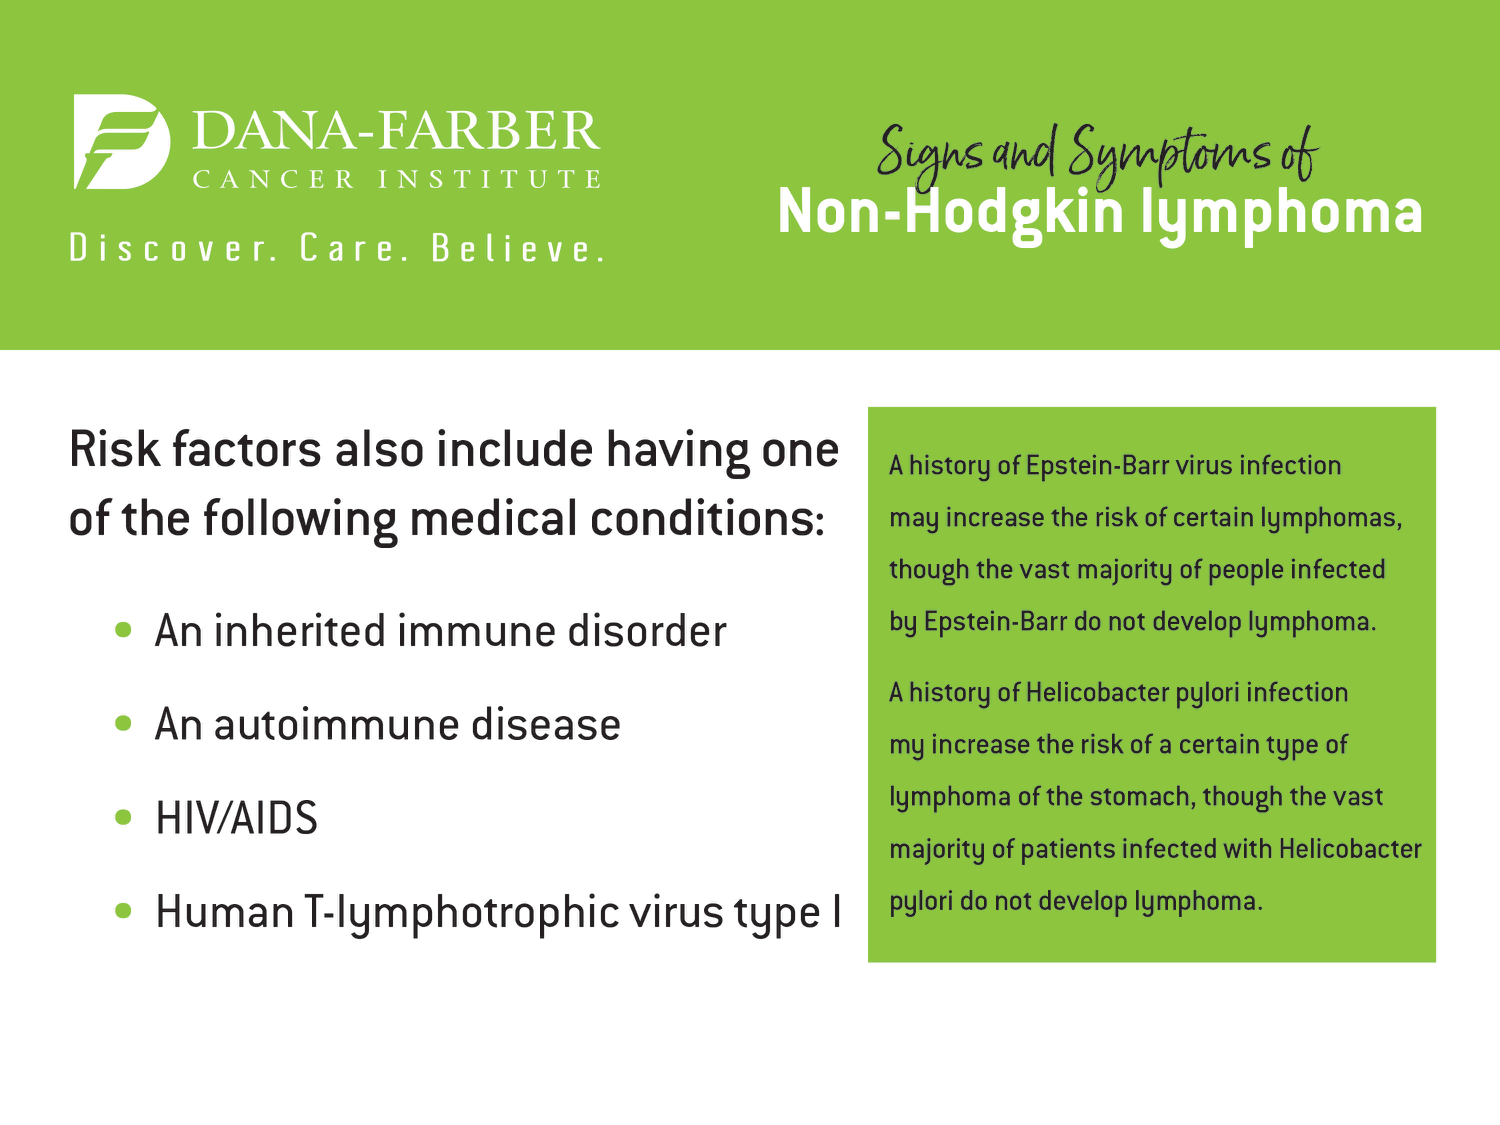 Non-Hodgkin Lymphoma Symptoms and Signs | Dana-Farber Cancer Institute